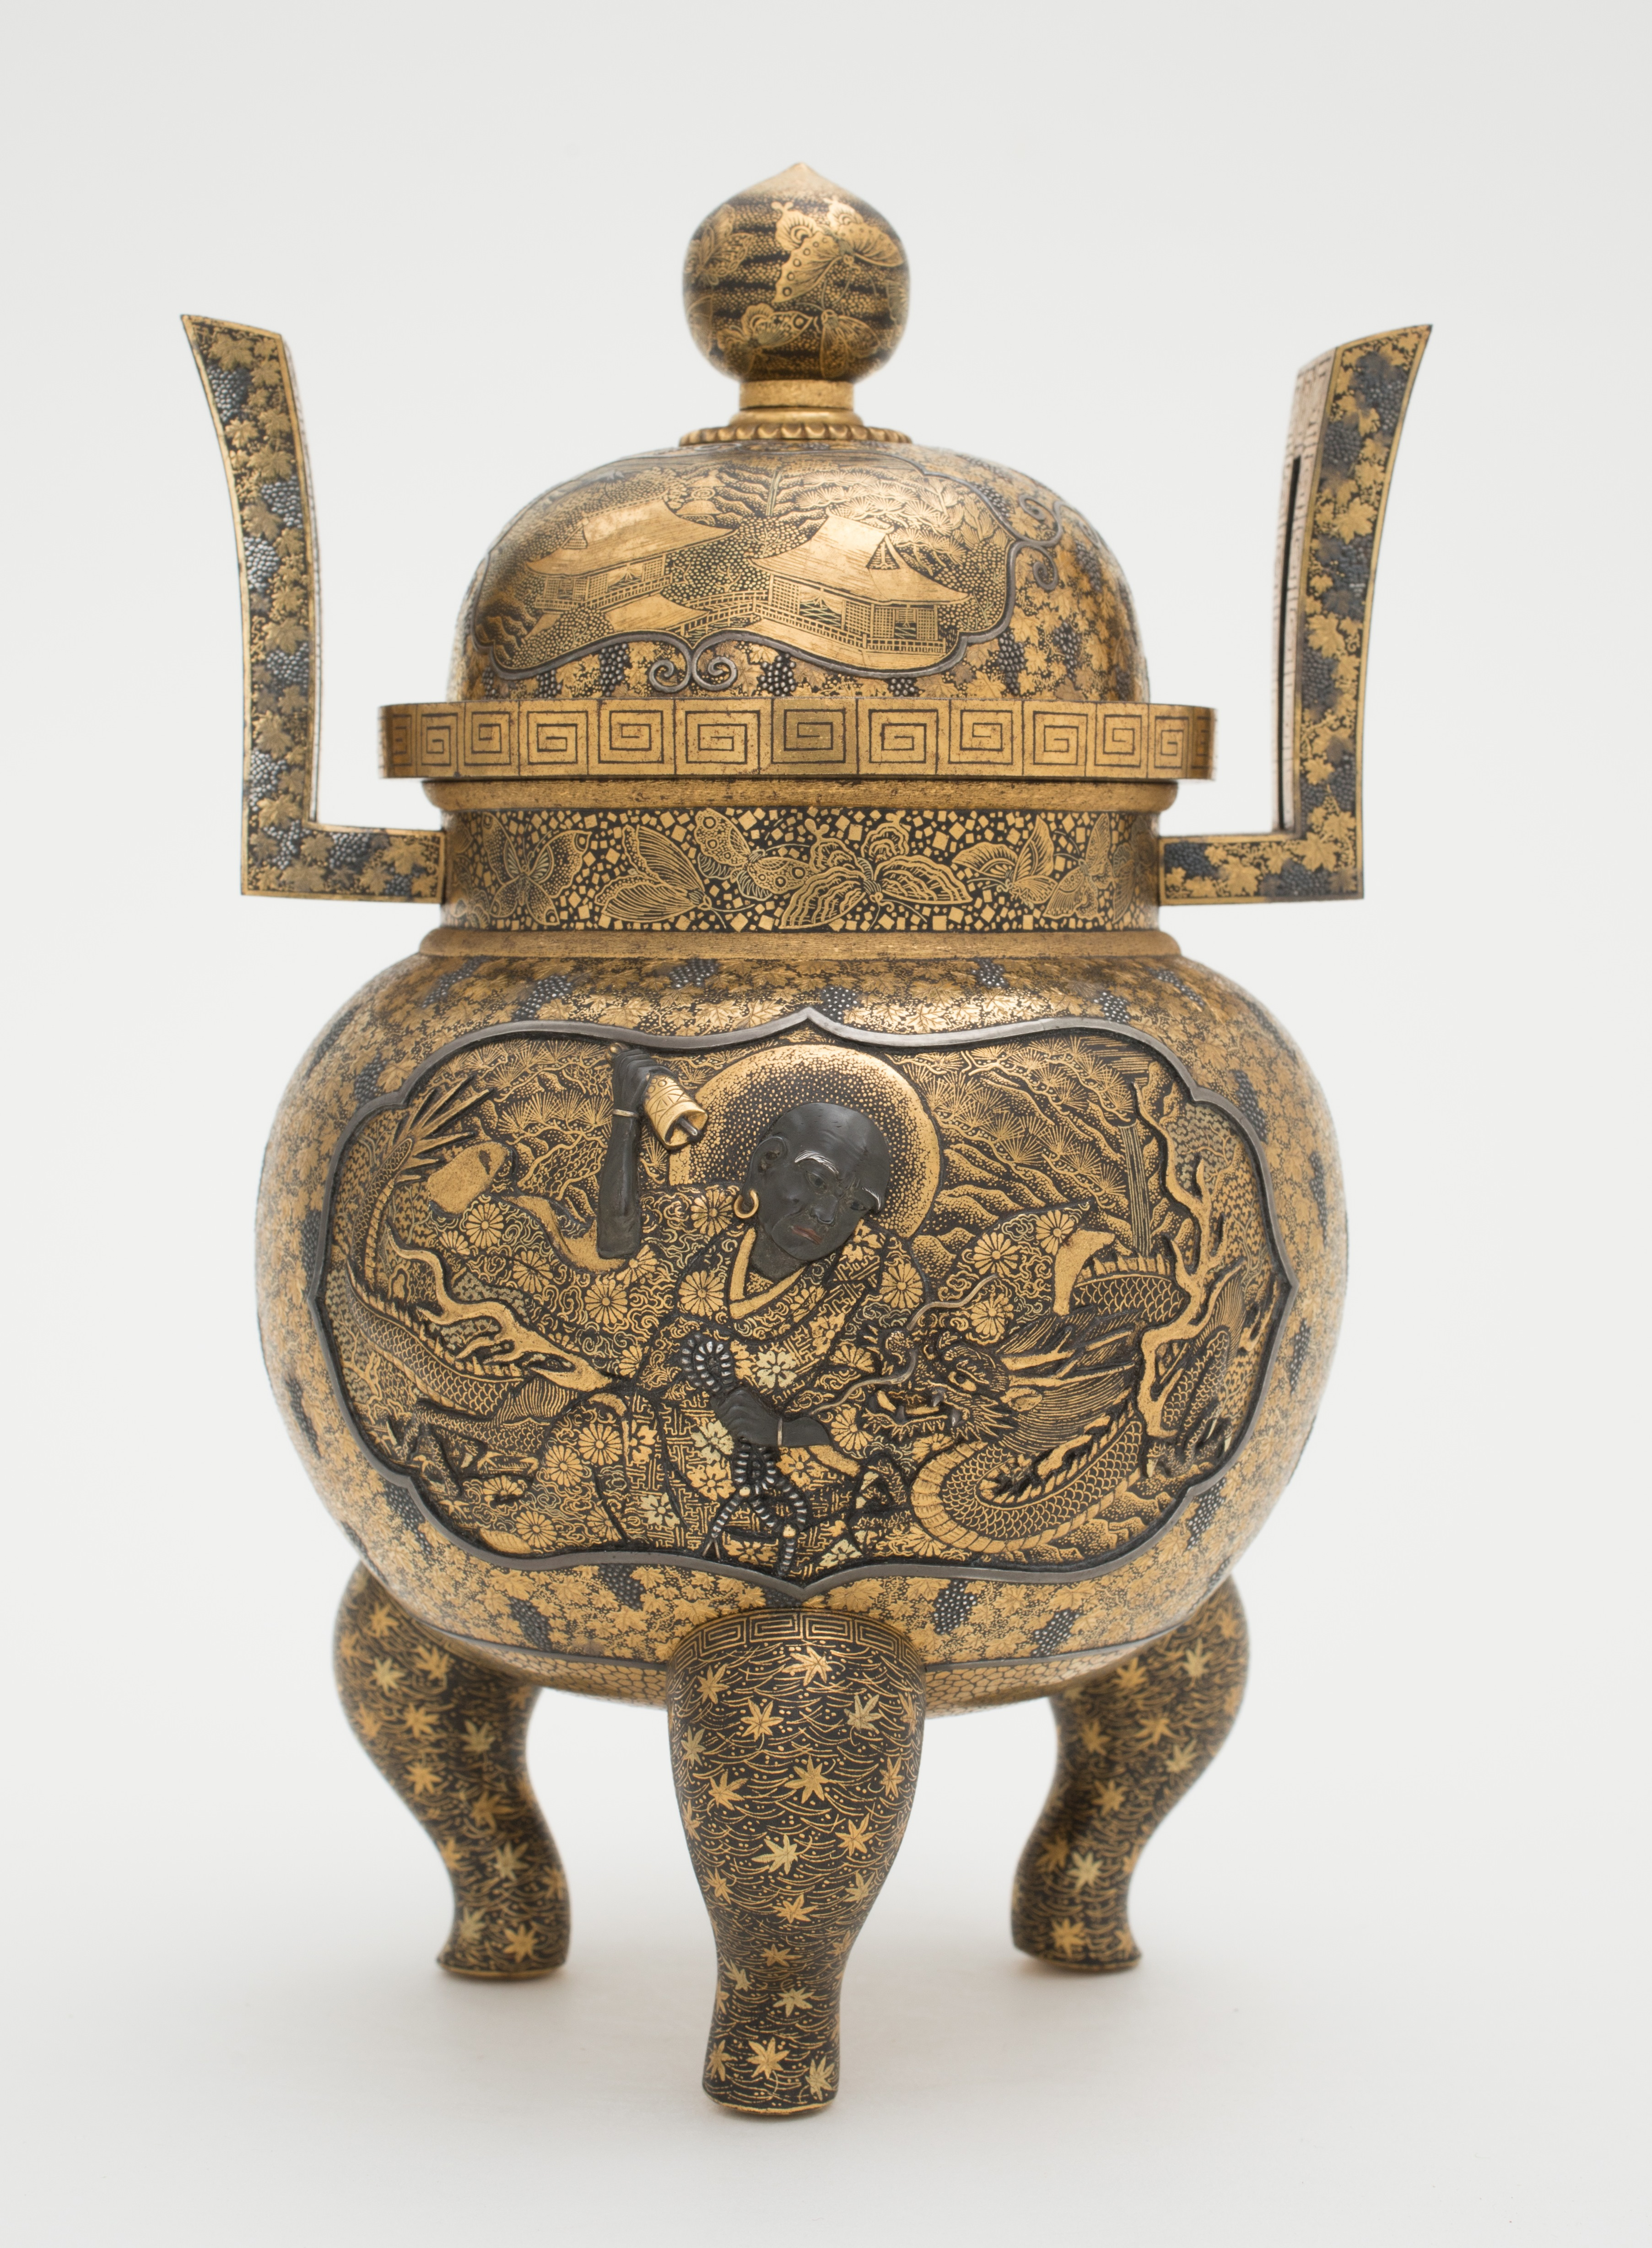 Three legged koro with lid and upright handles on either side. On the belly of the incense burner is a dragon and a budda who is holding a bell in one hand and a string of beads in his other